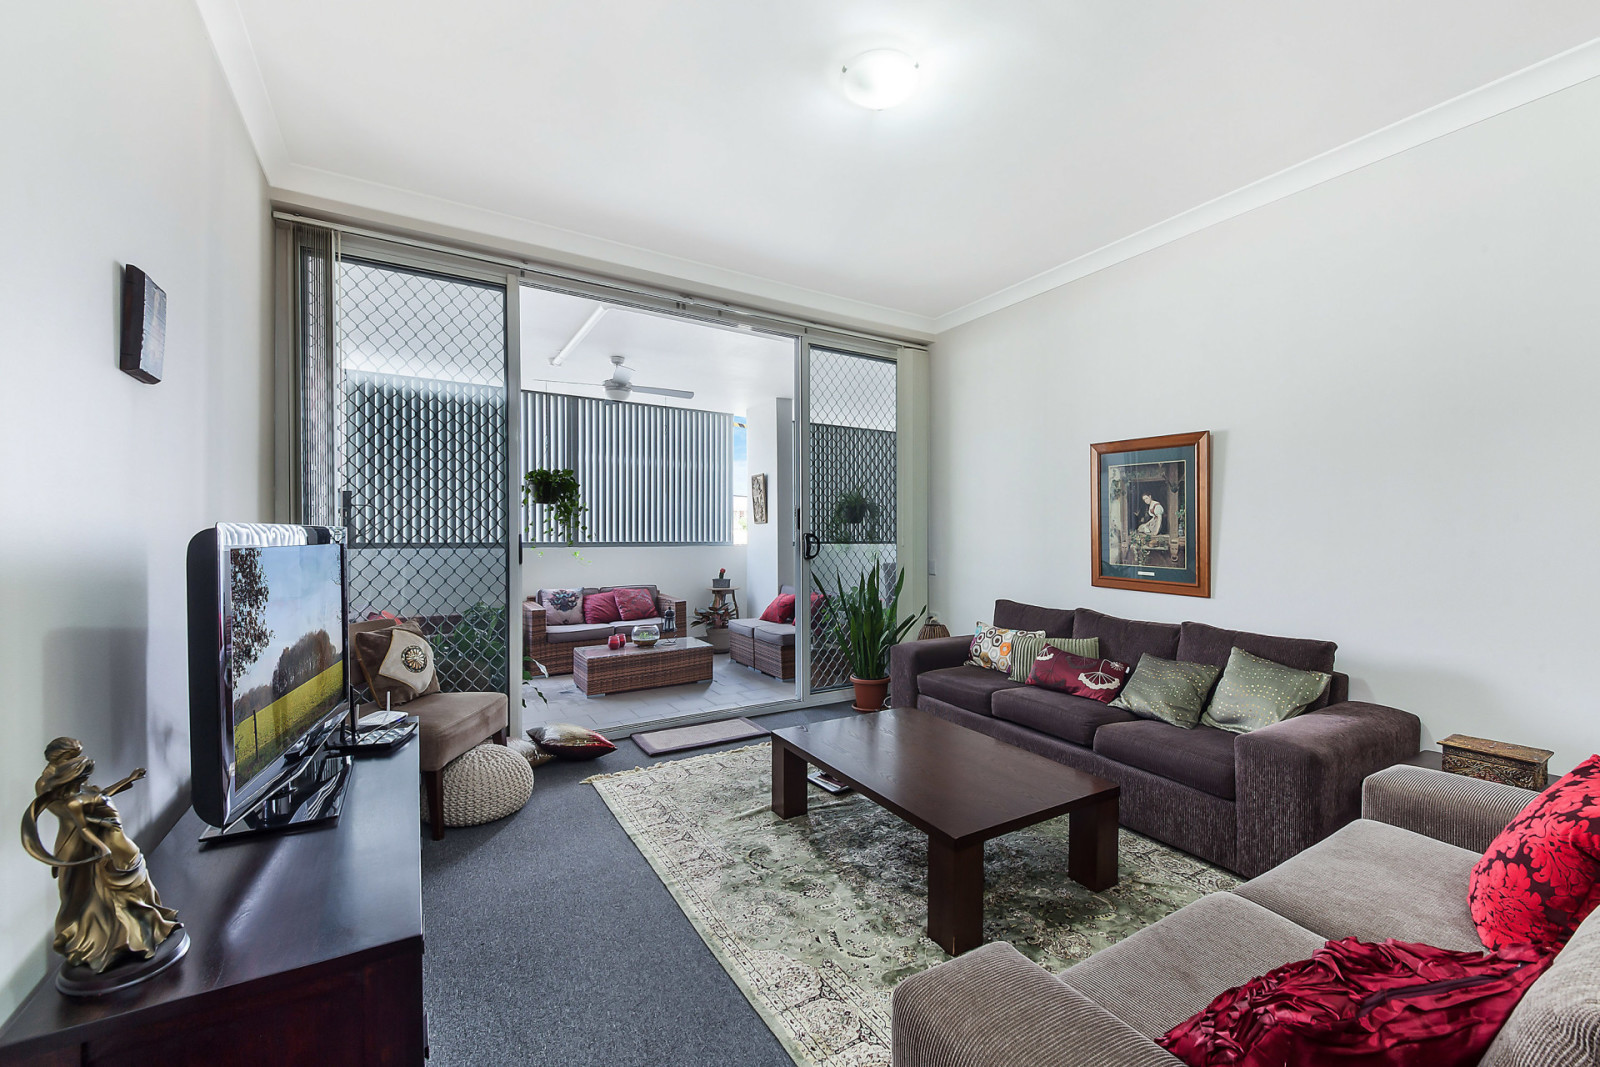 NORTH FACING AND SPACIOUS 2 BEDROOM UNIT